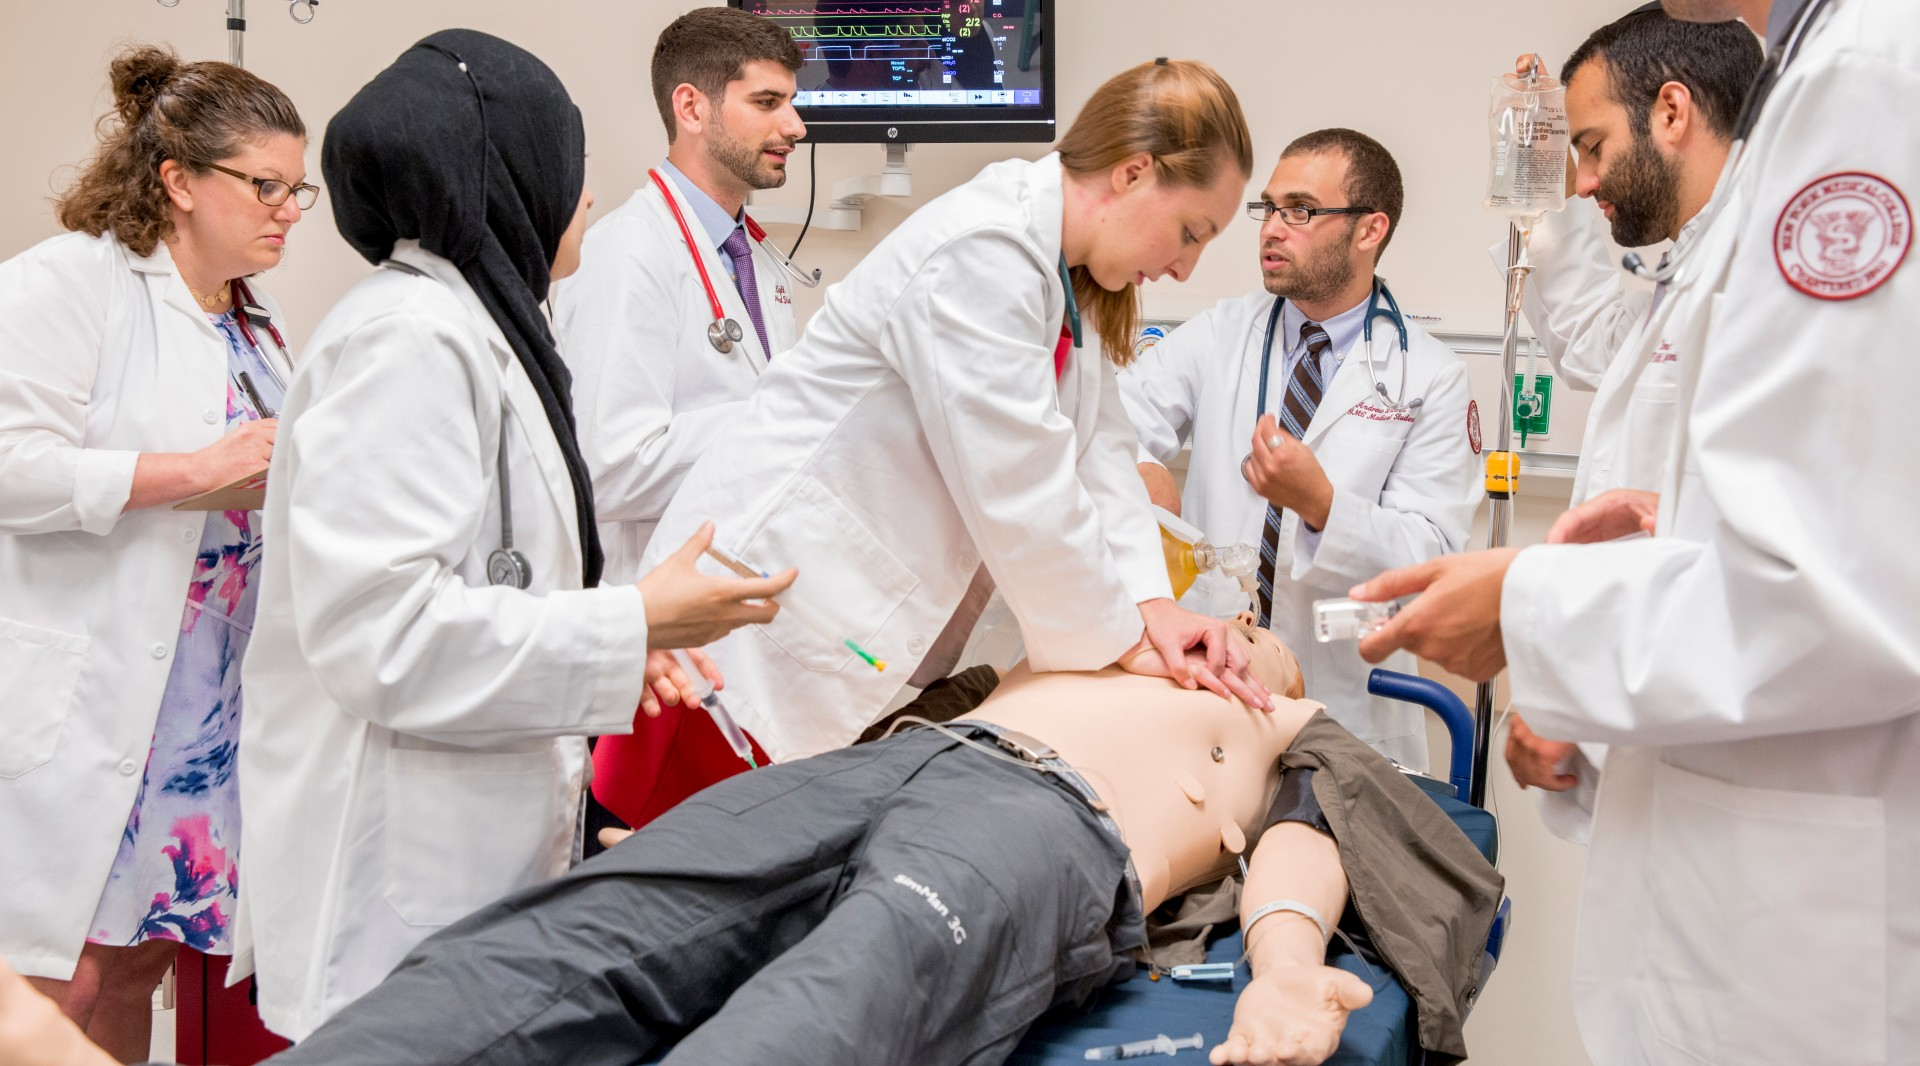 This medical school is putting a uniquely Jewish spin on